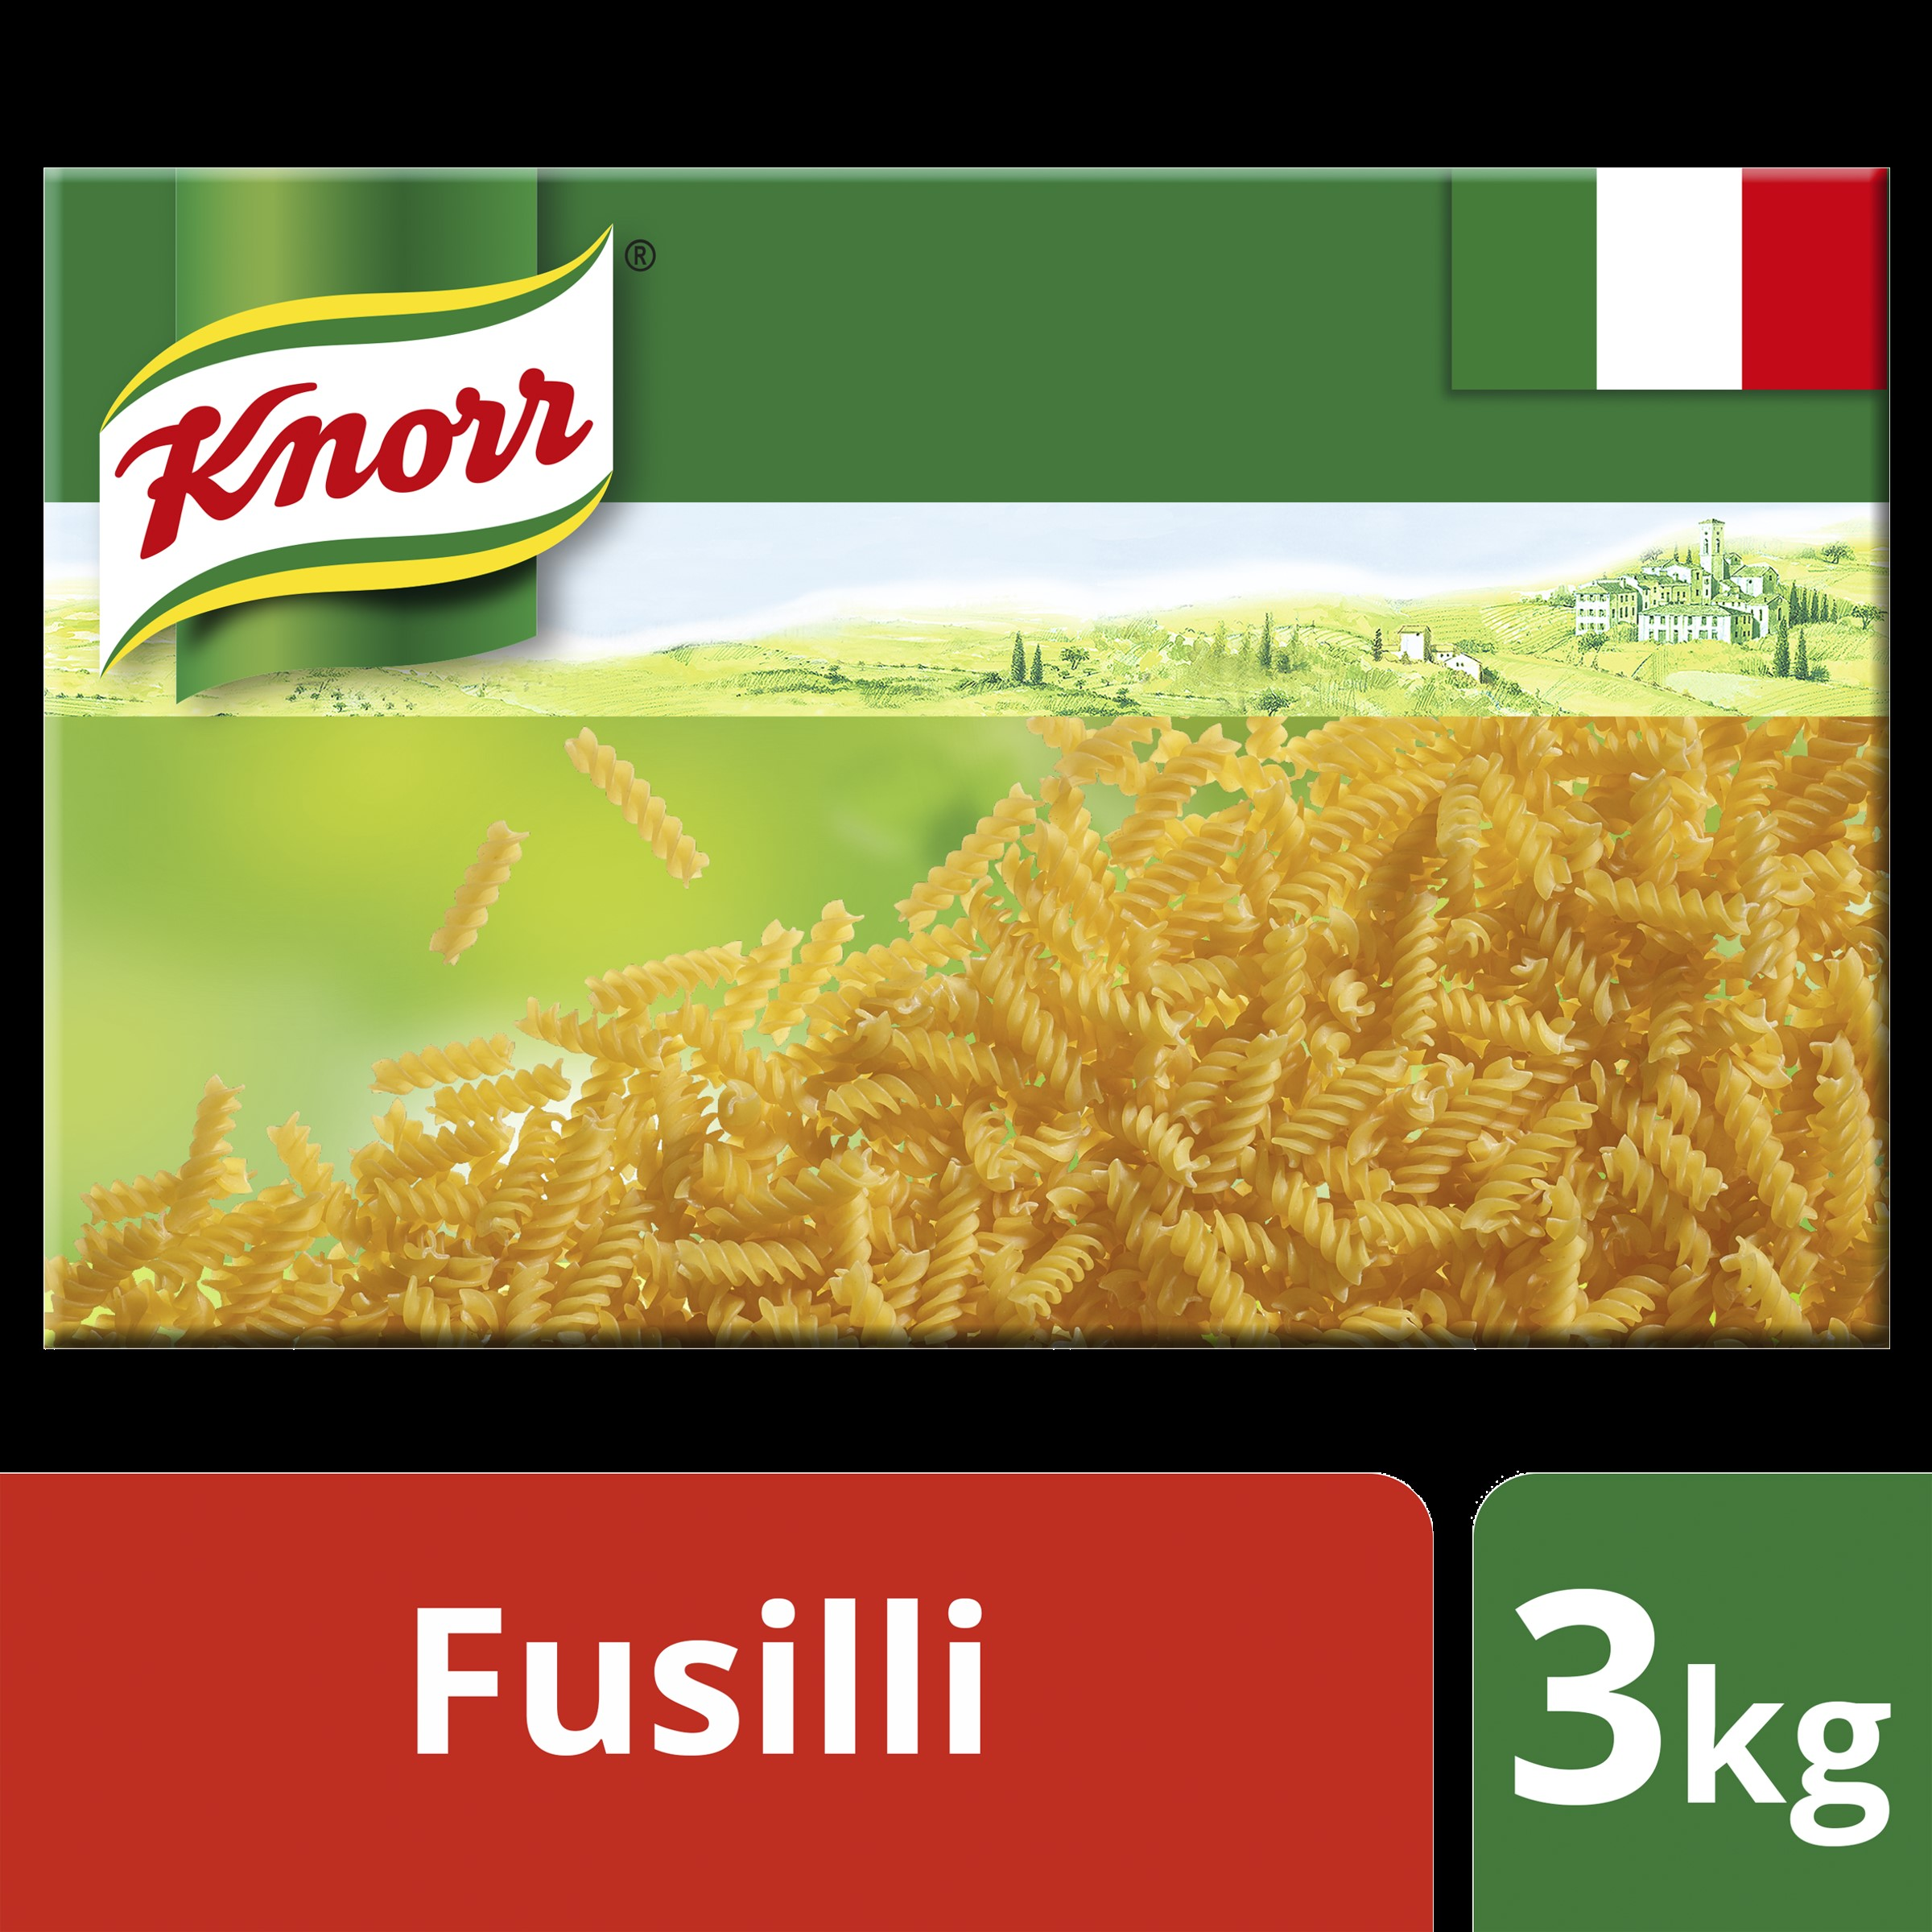 2 x Knorr Fusilli 3kg Offer